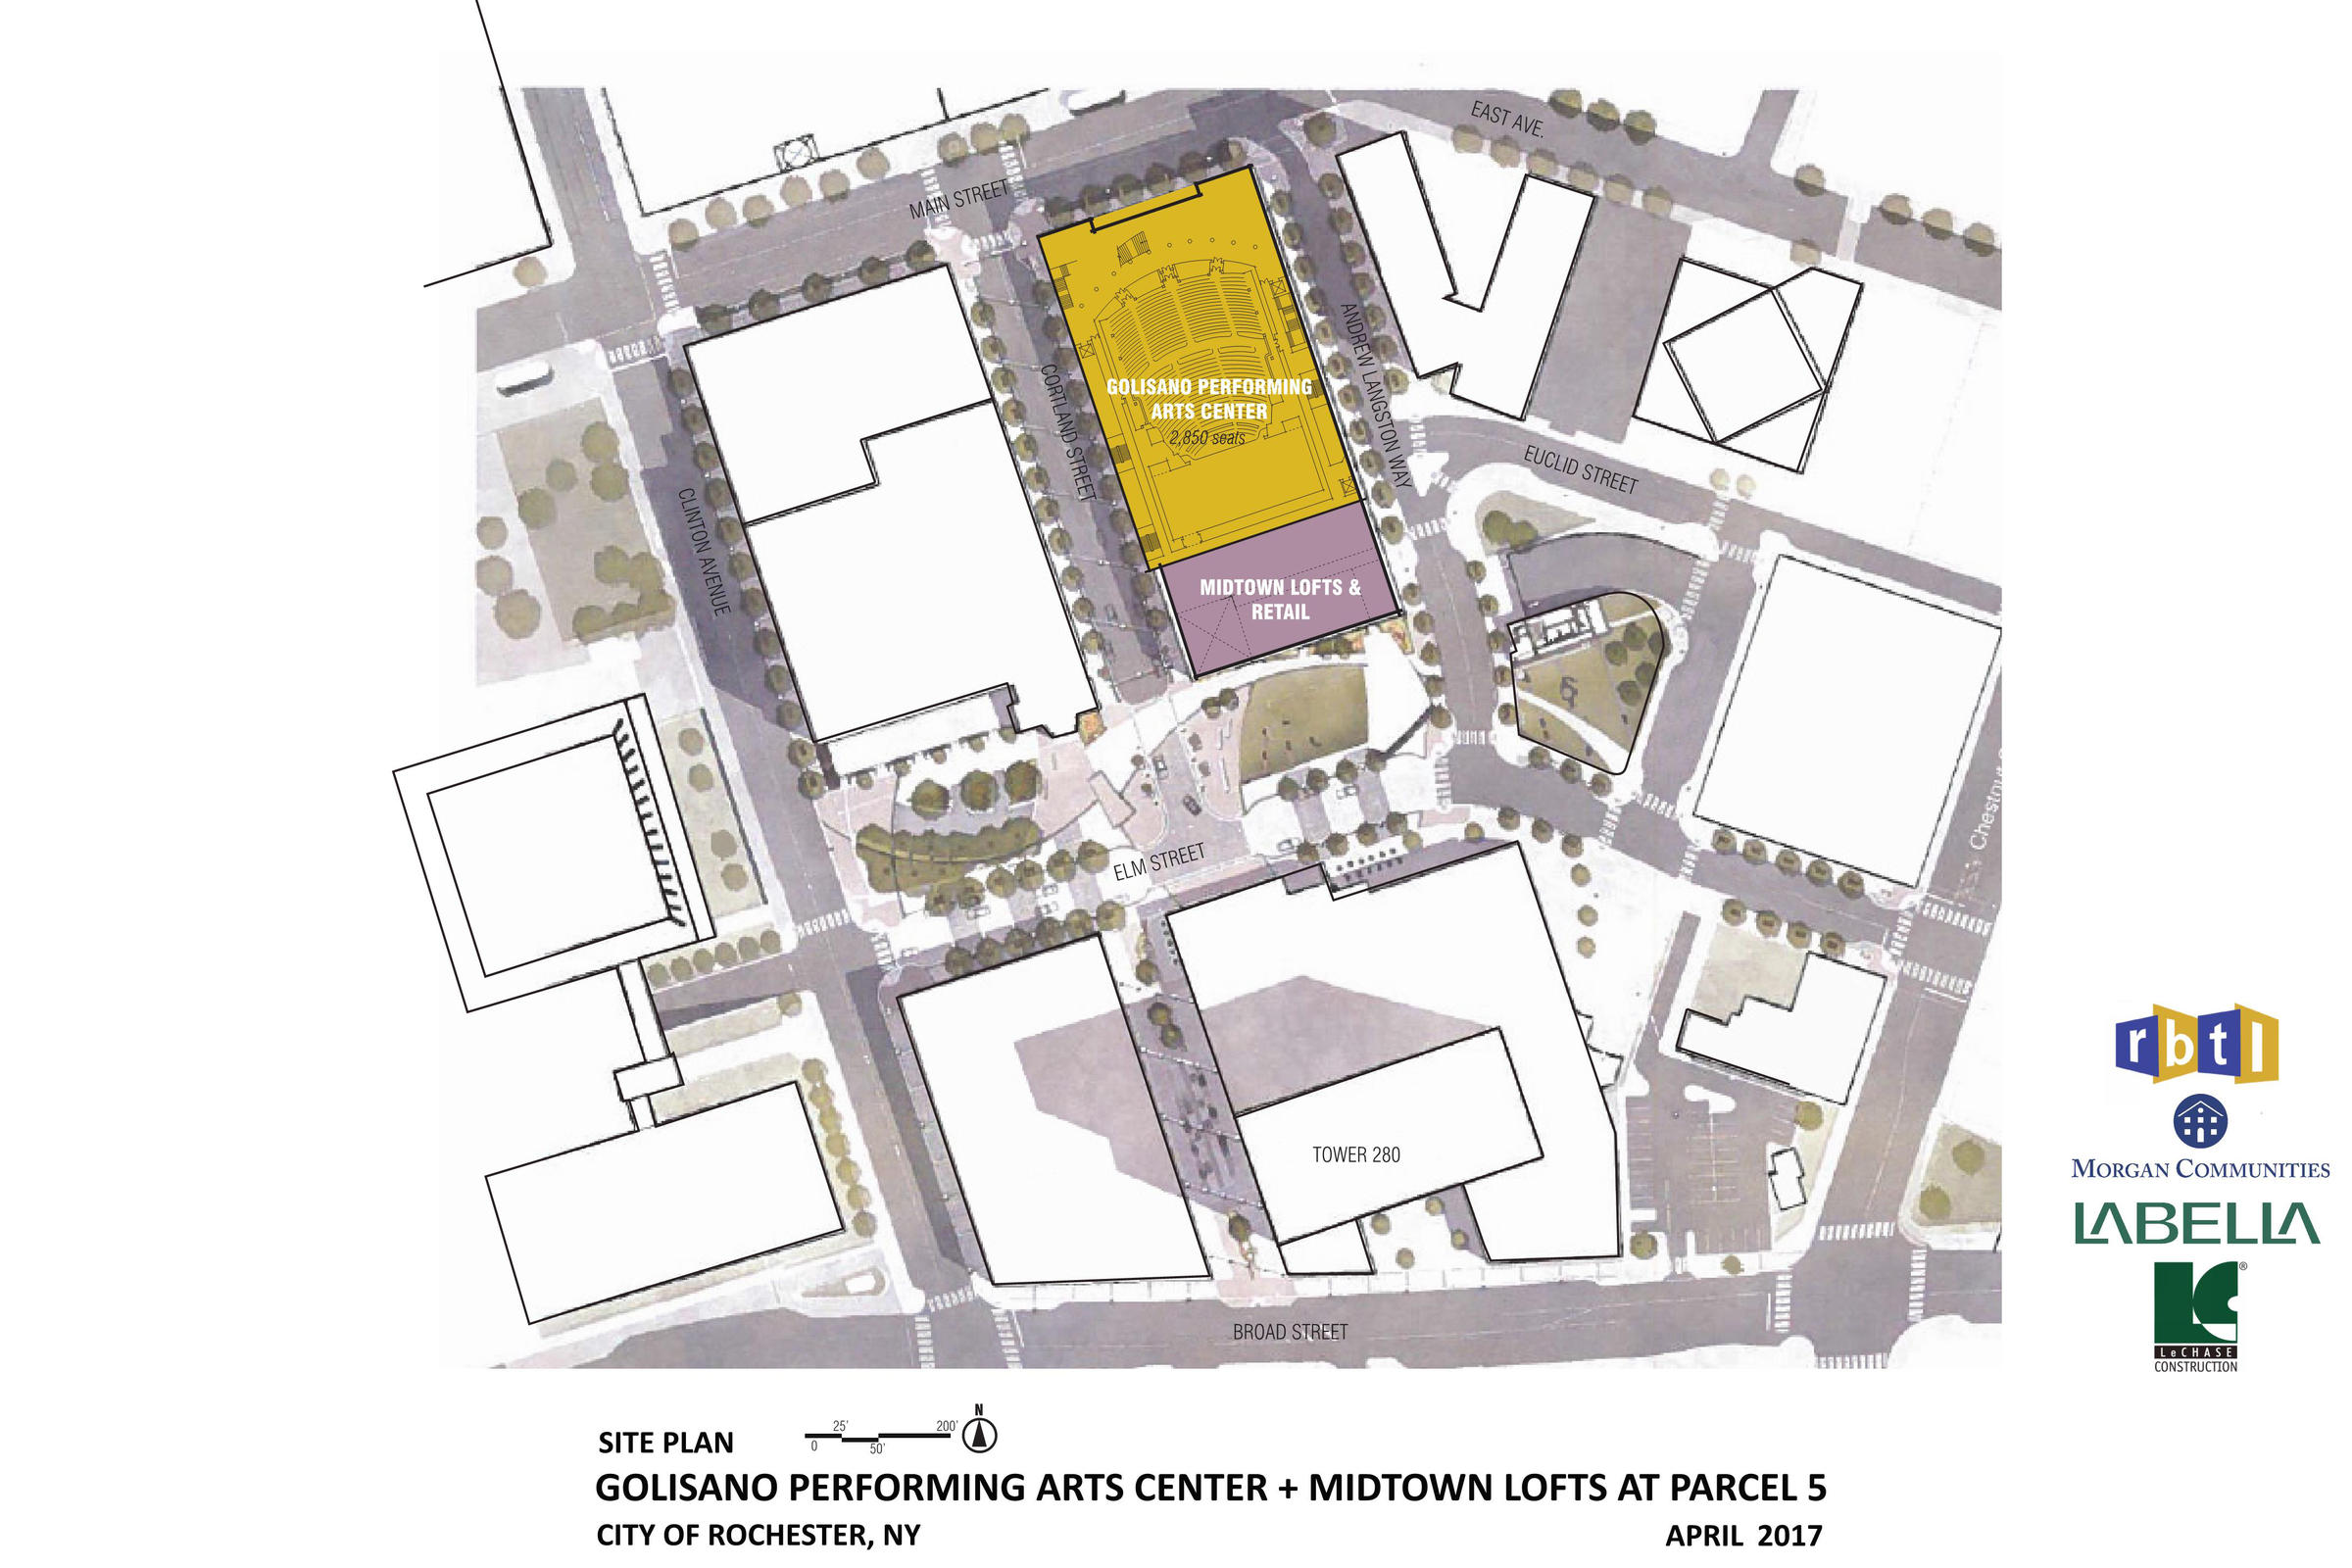 RBTL to get performing arts center at Parcel 5 – How To Get A Site Plan